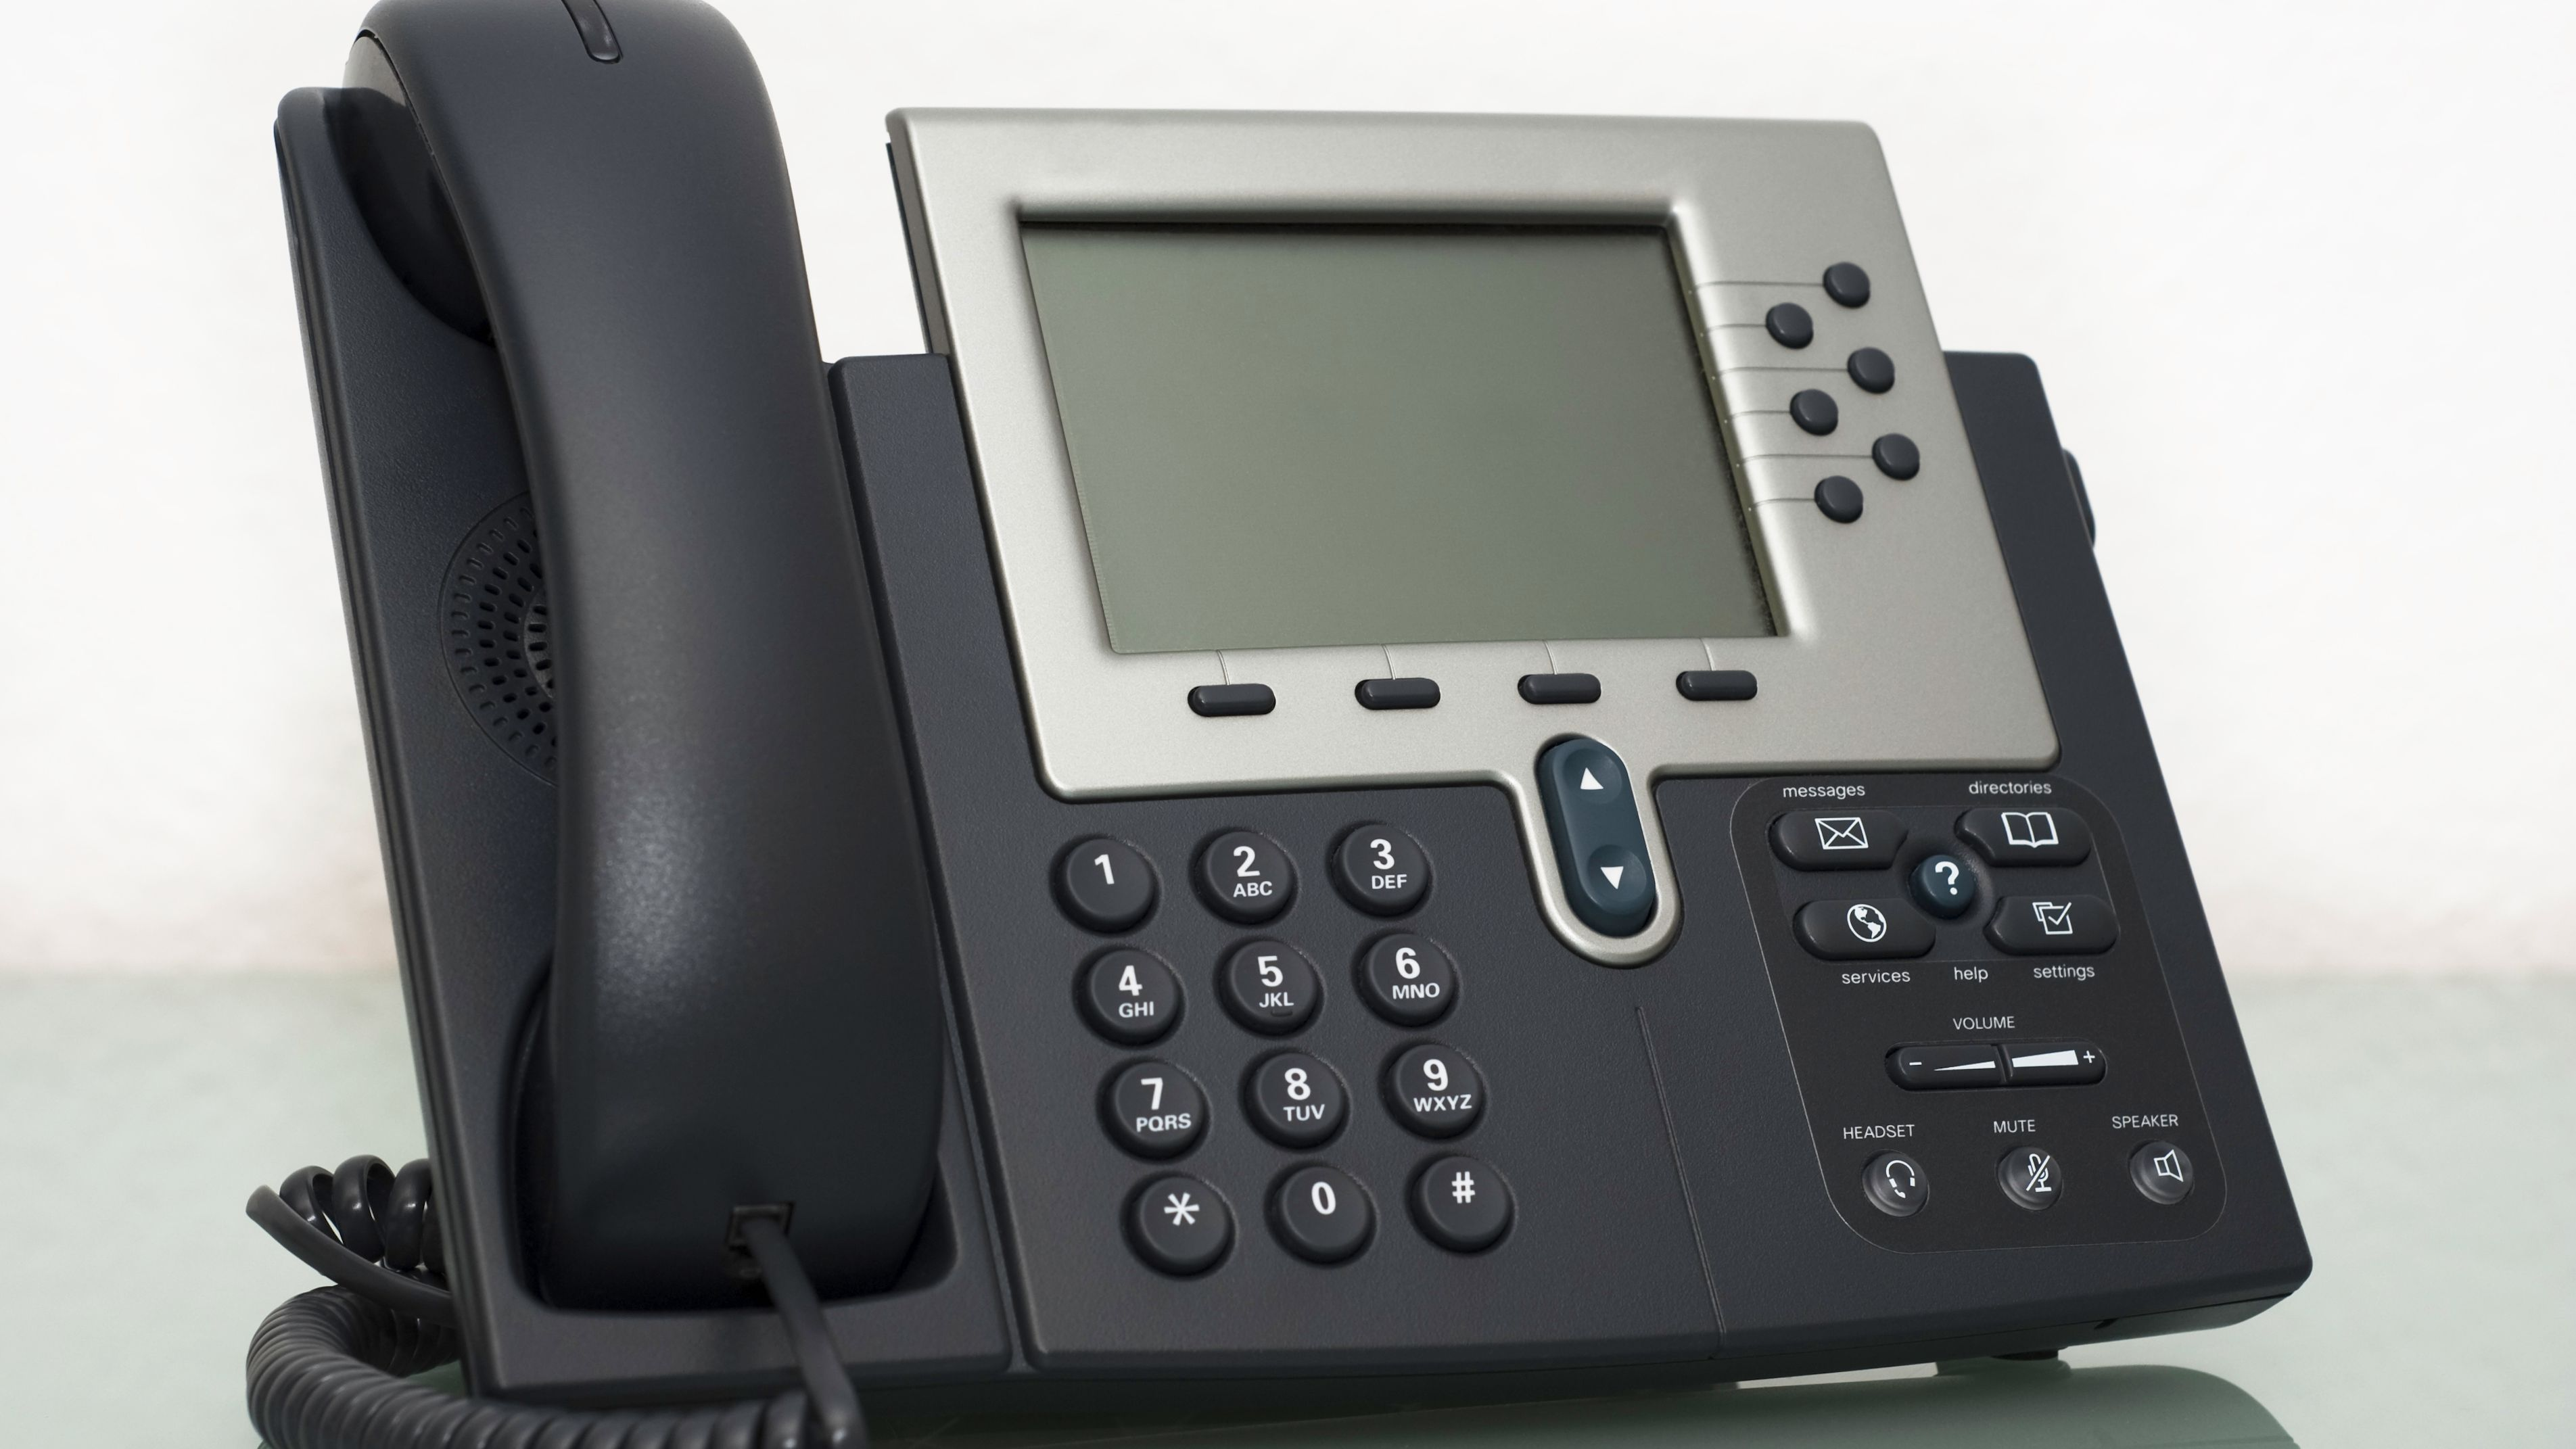 VoIP Definition (Voice over Internet Protocol)